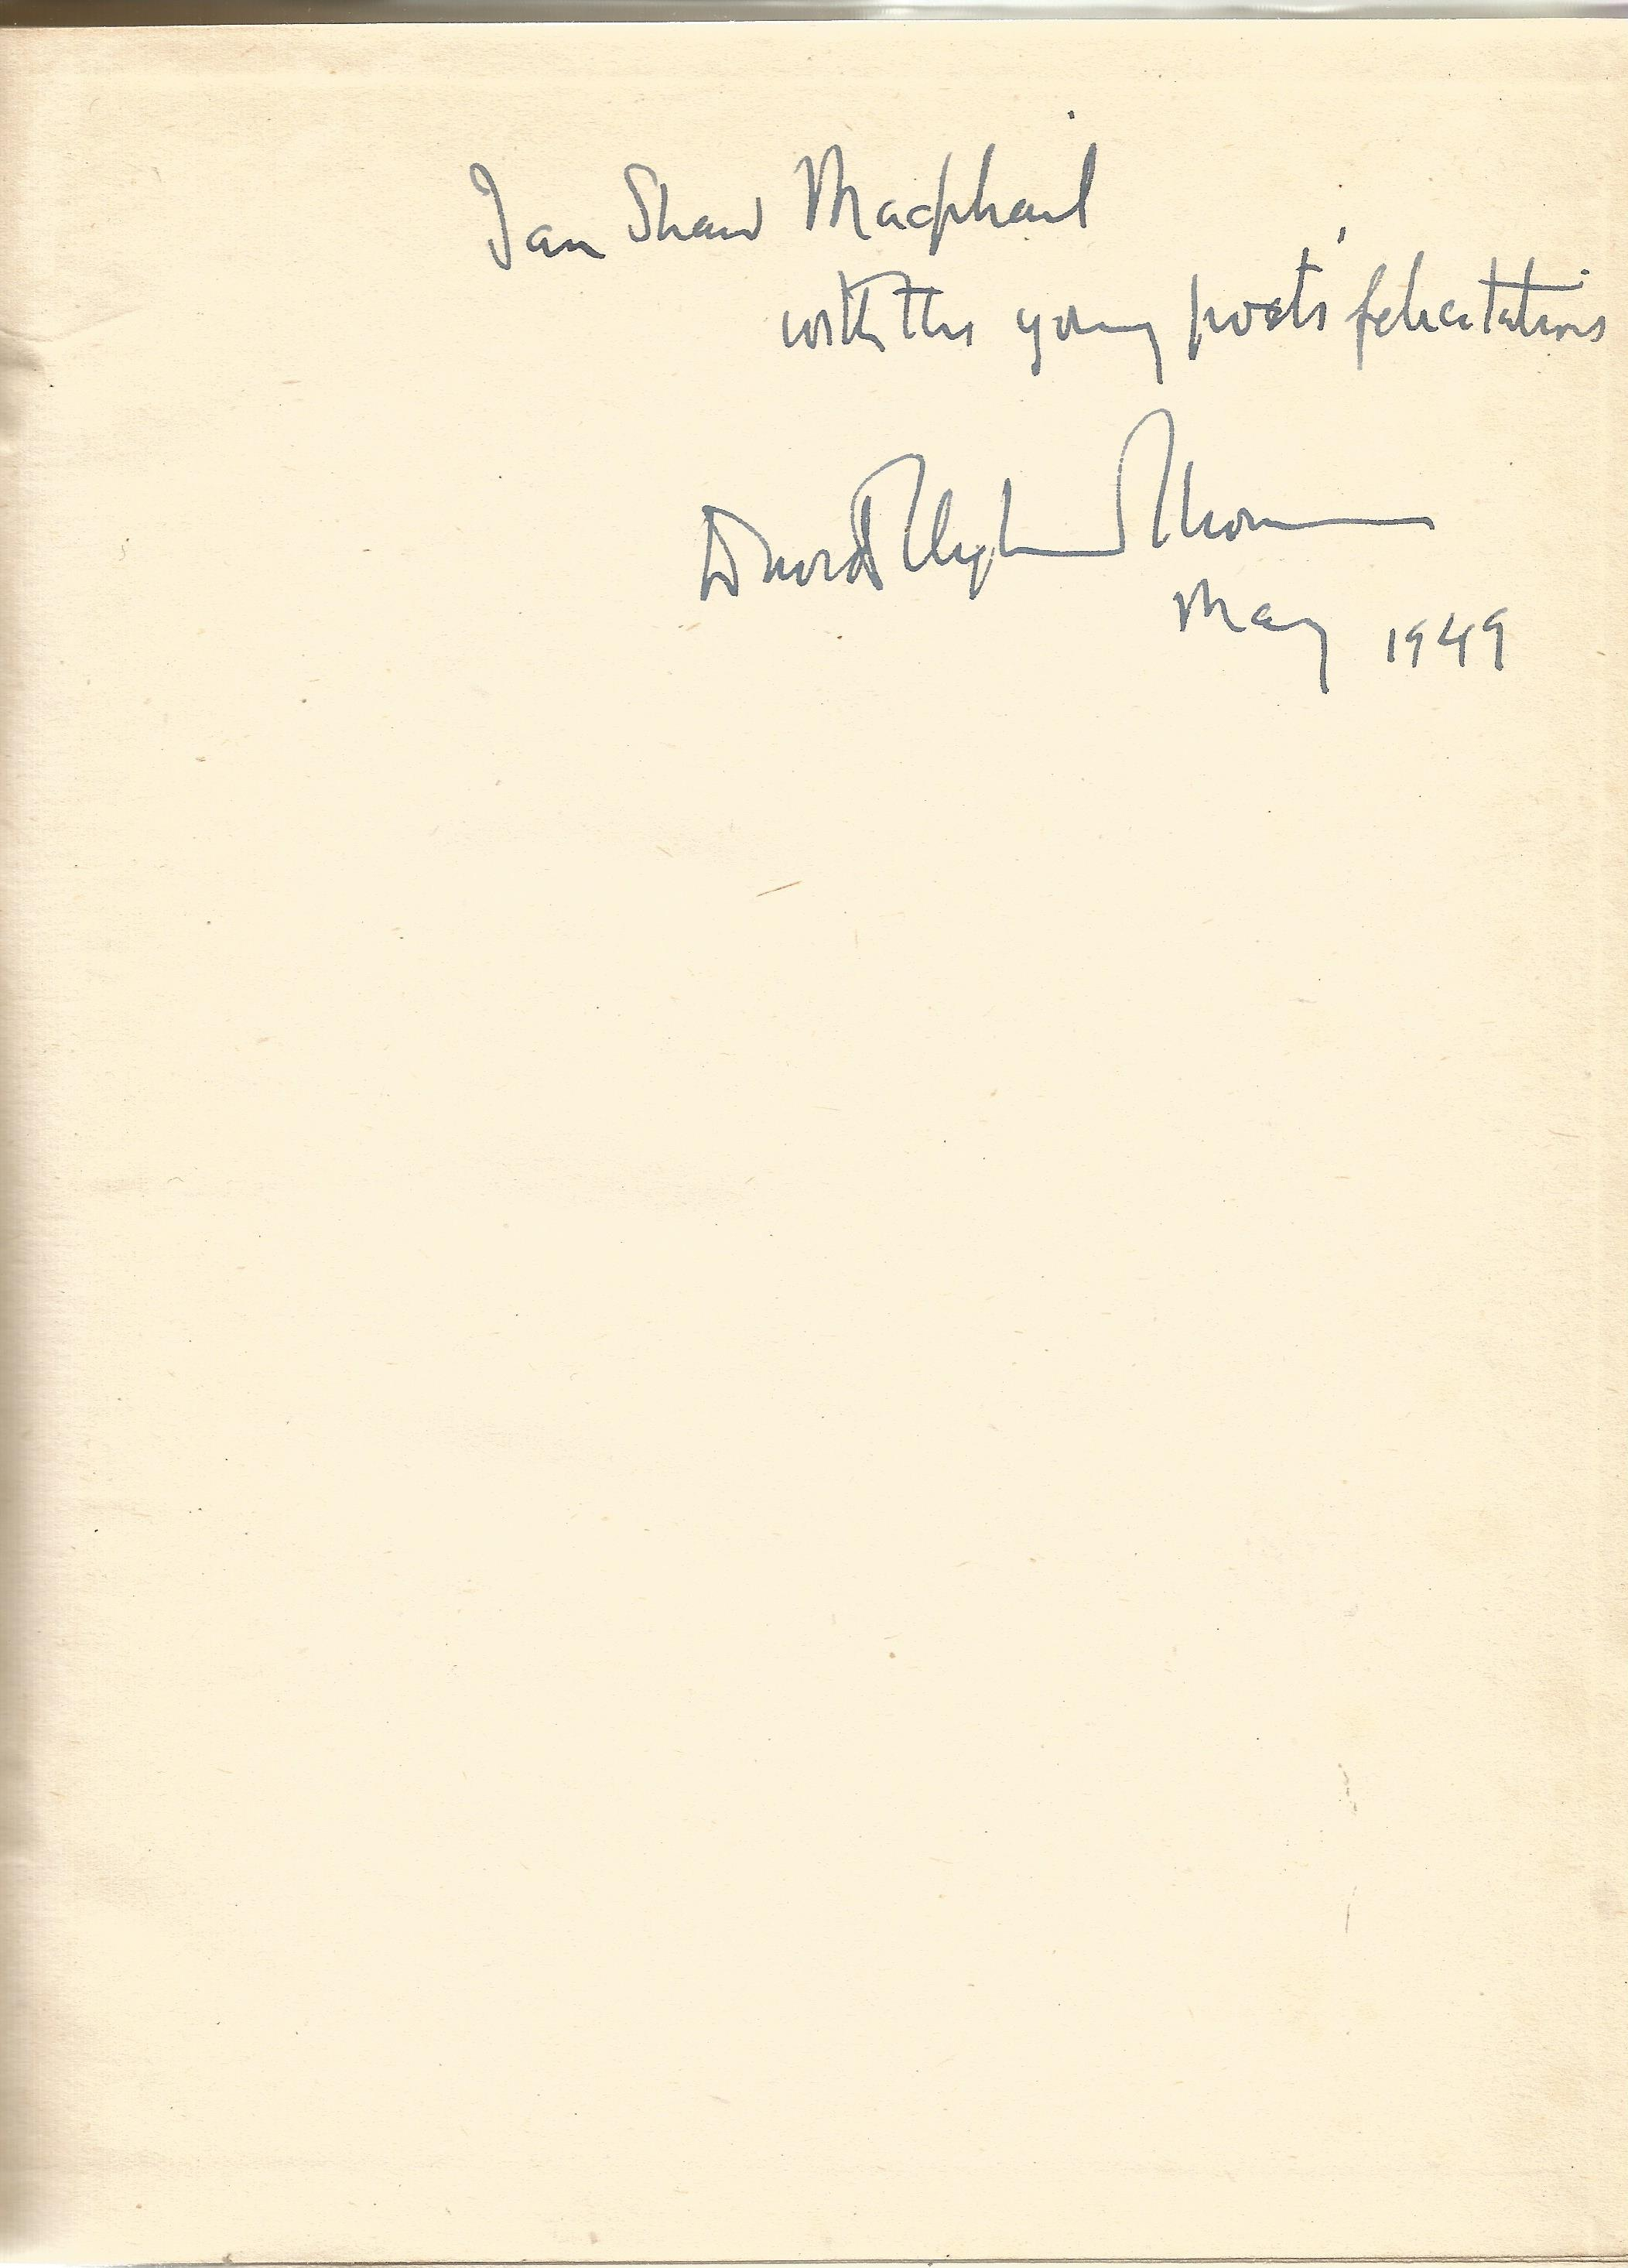 David Cleghorn Thomson Hardback Book The Hidden Path 1943 signed by the Author on the First Page and - Image 2 of 2